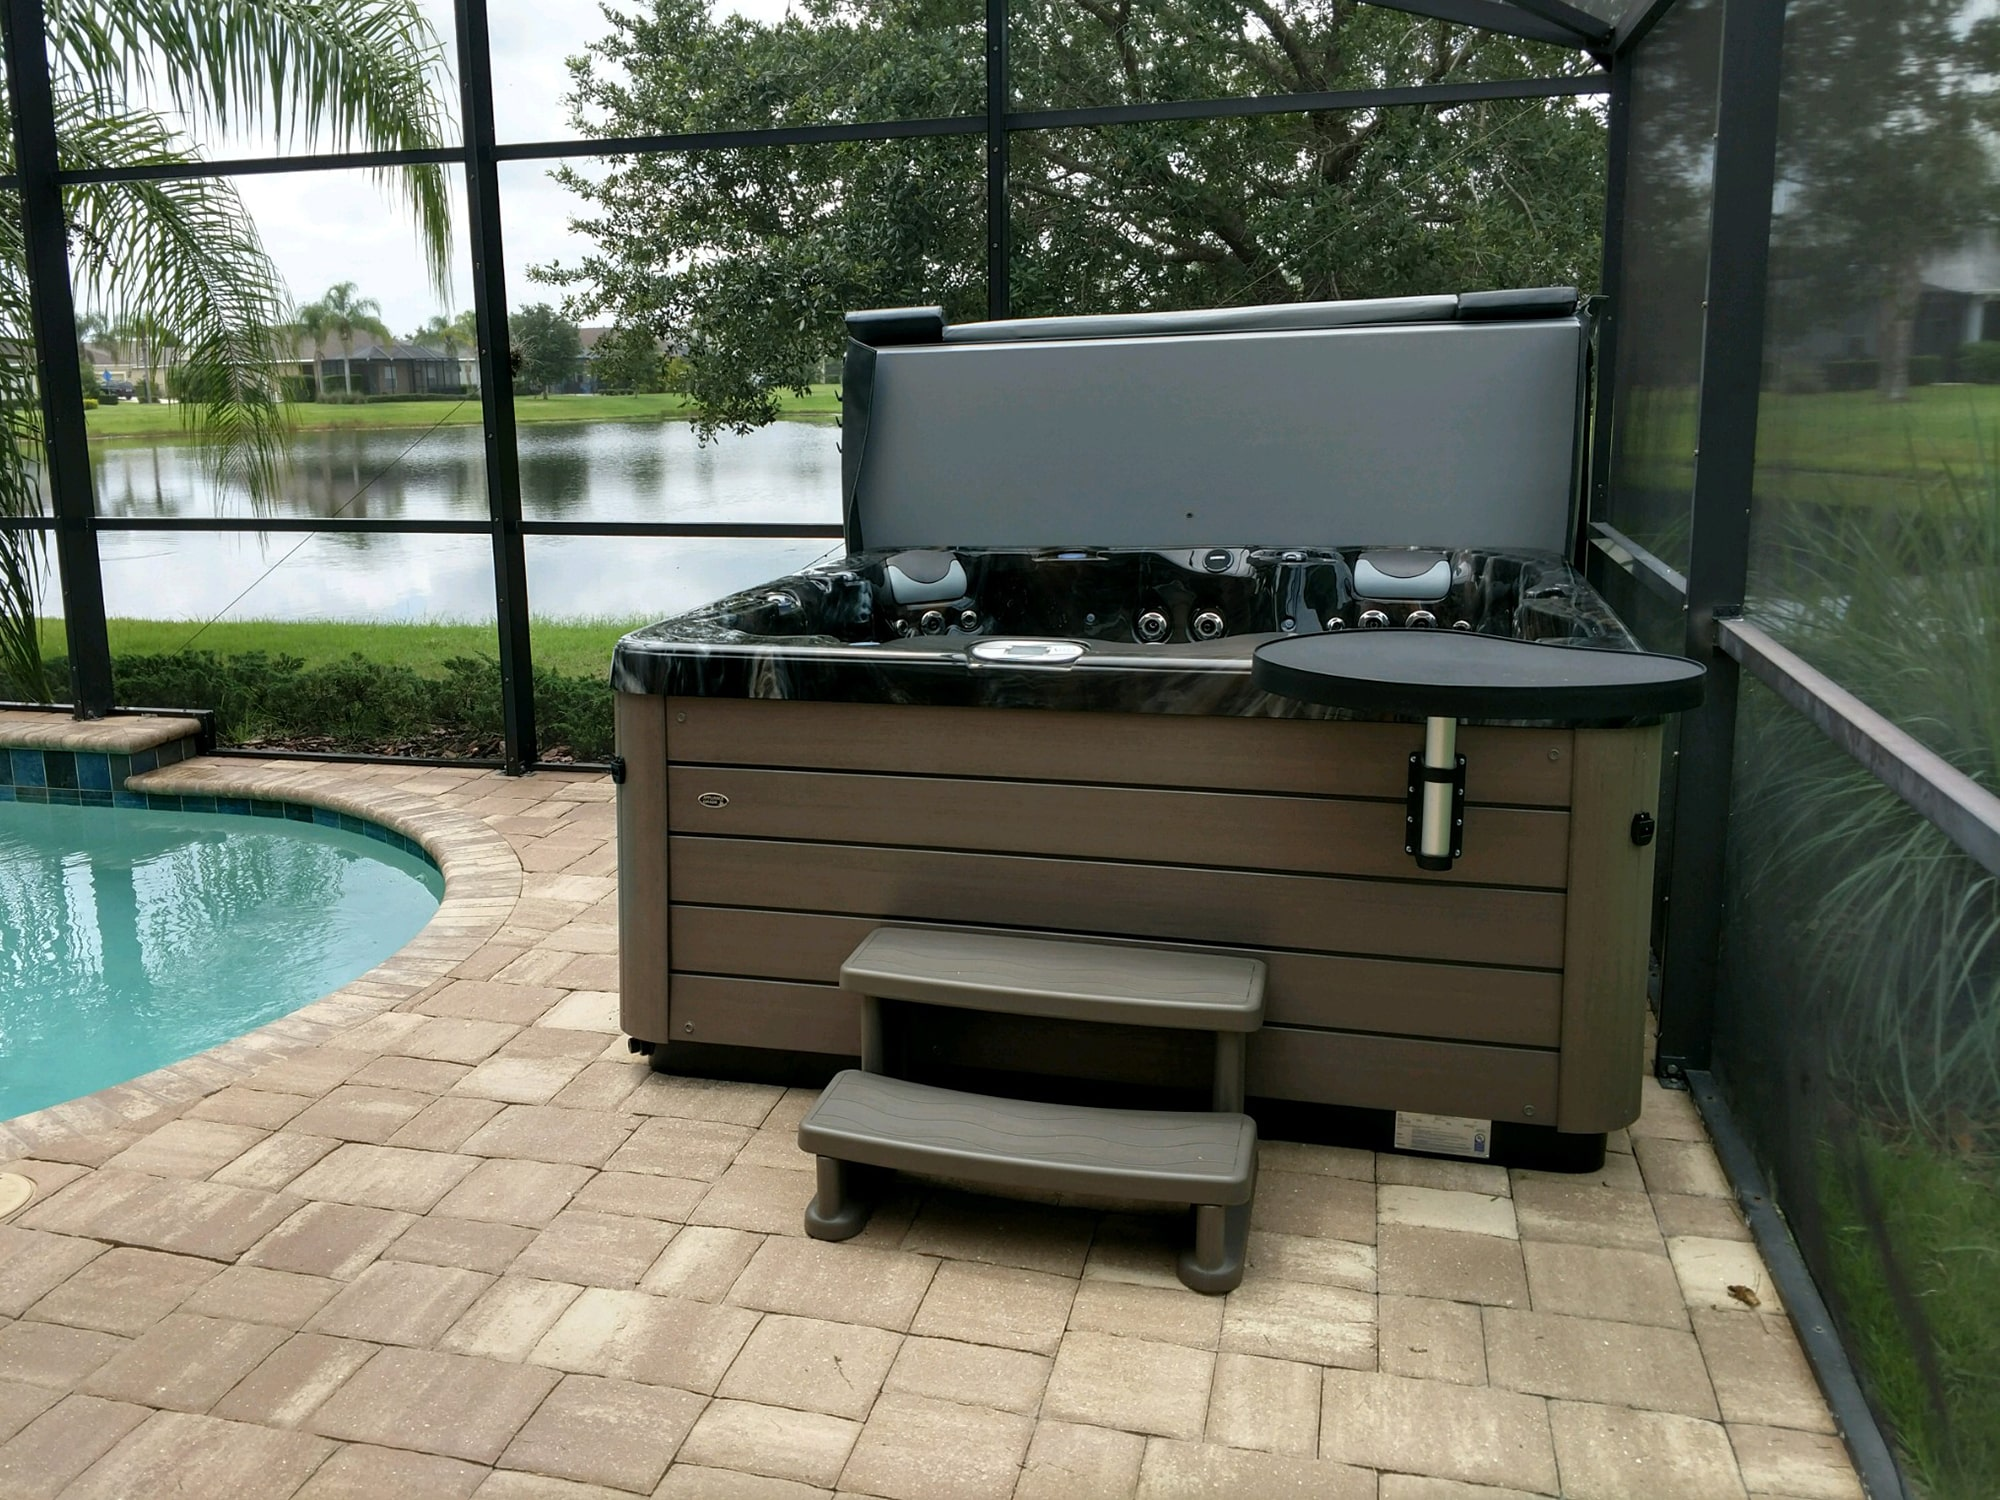 Prestige Hot Tub Install in Sarasota